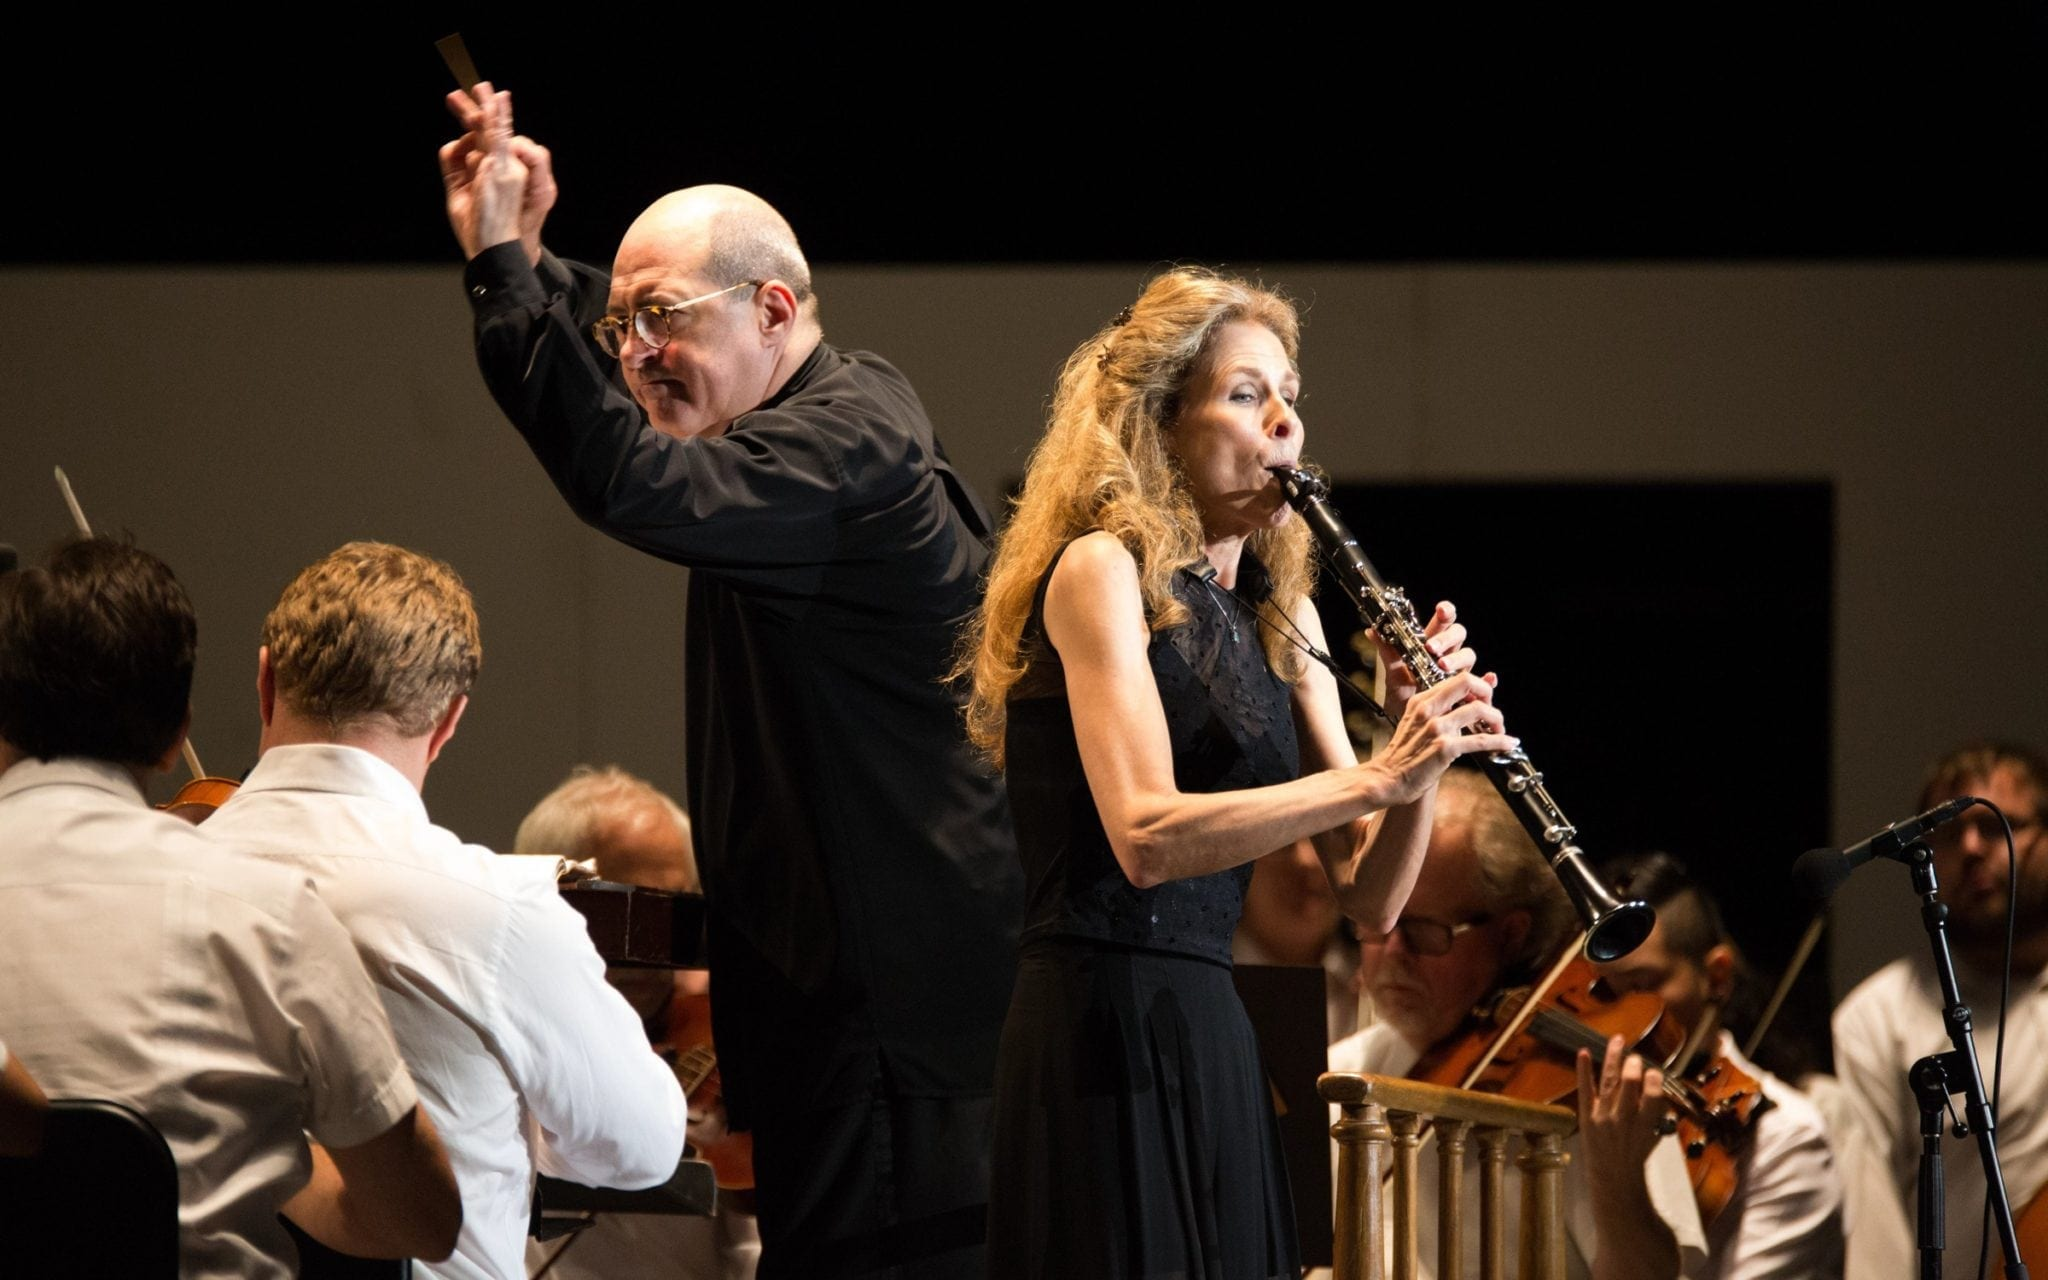 Robert Spano (left) with principal clarinetist Laura Ardan. (Photos by Jeff Roffman)